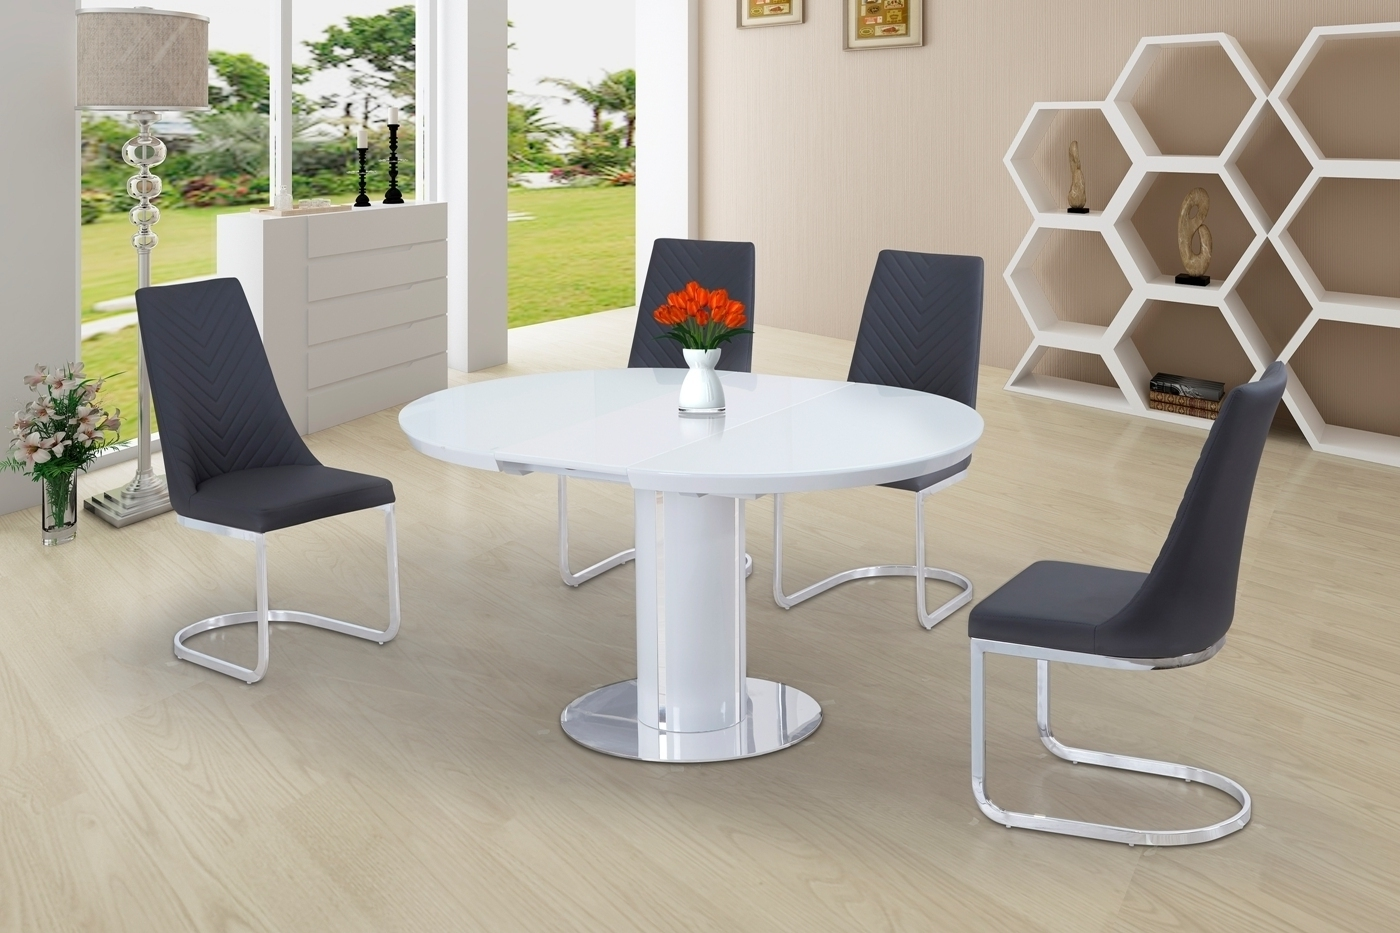 Round White Glass High Gloss Dining Table And 6 Grey Chairs Throughout Best And Newest White Gloss Dining Tables And 6 Chairs (View 16 of 25)